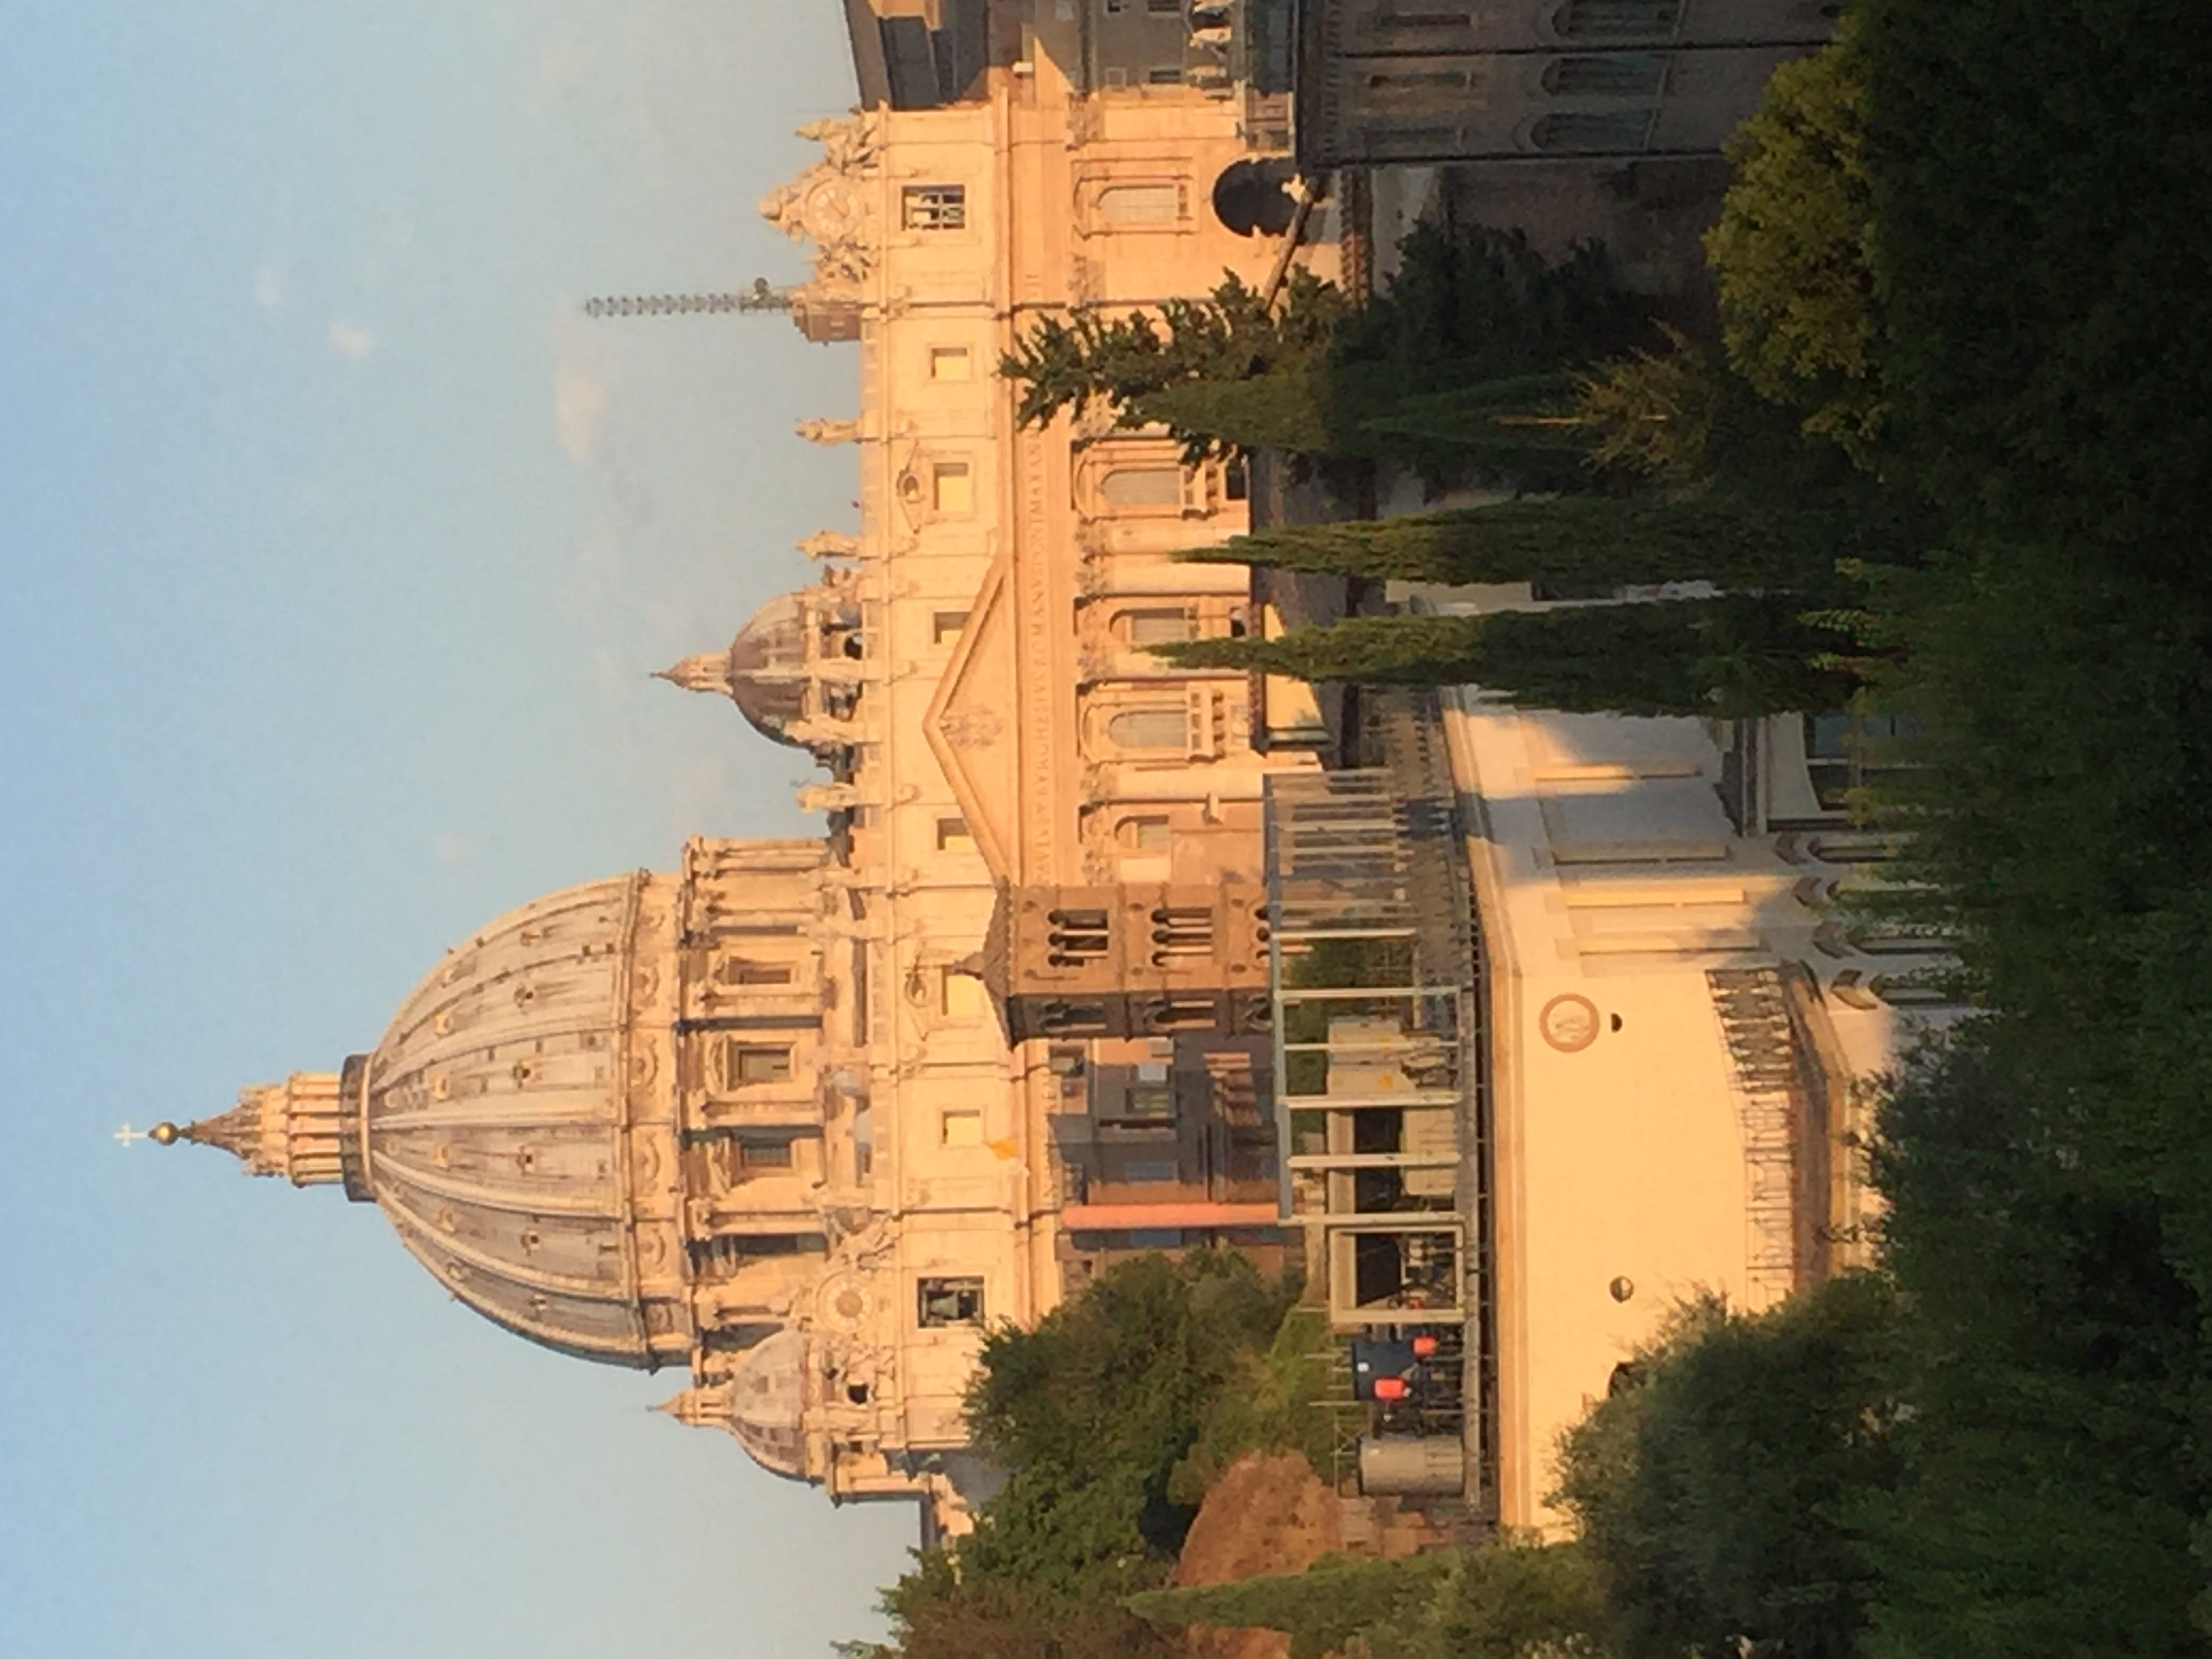 St Peter's from Jesuit Curia